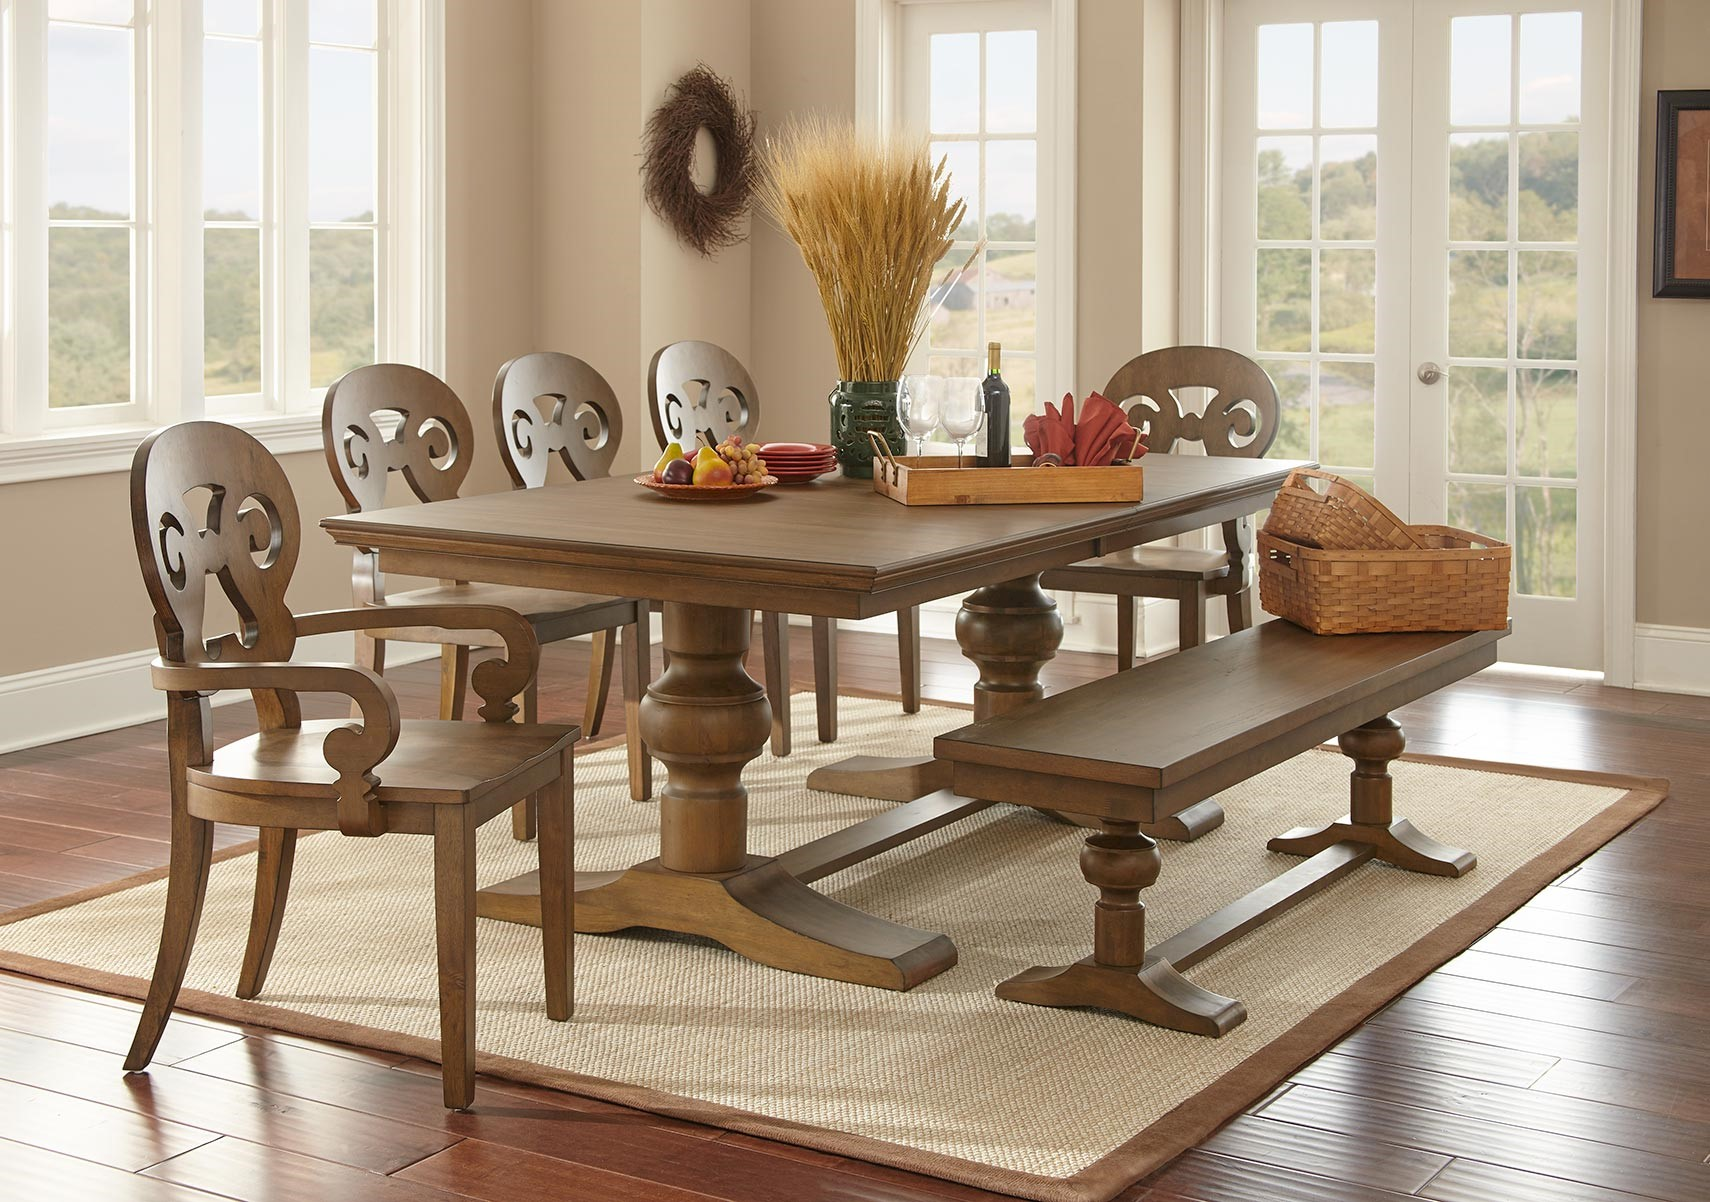 Lacks | Grayson 6-Pc Dining Room Set